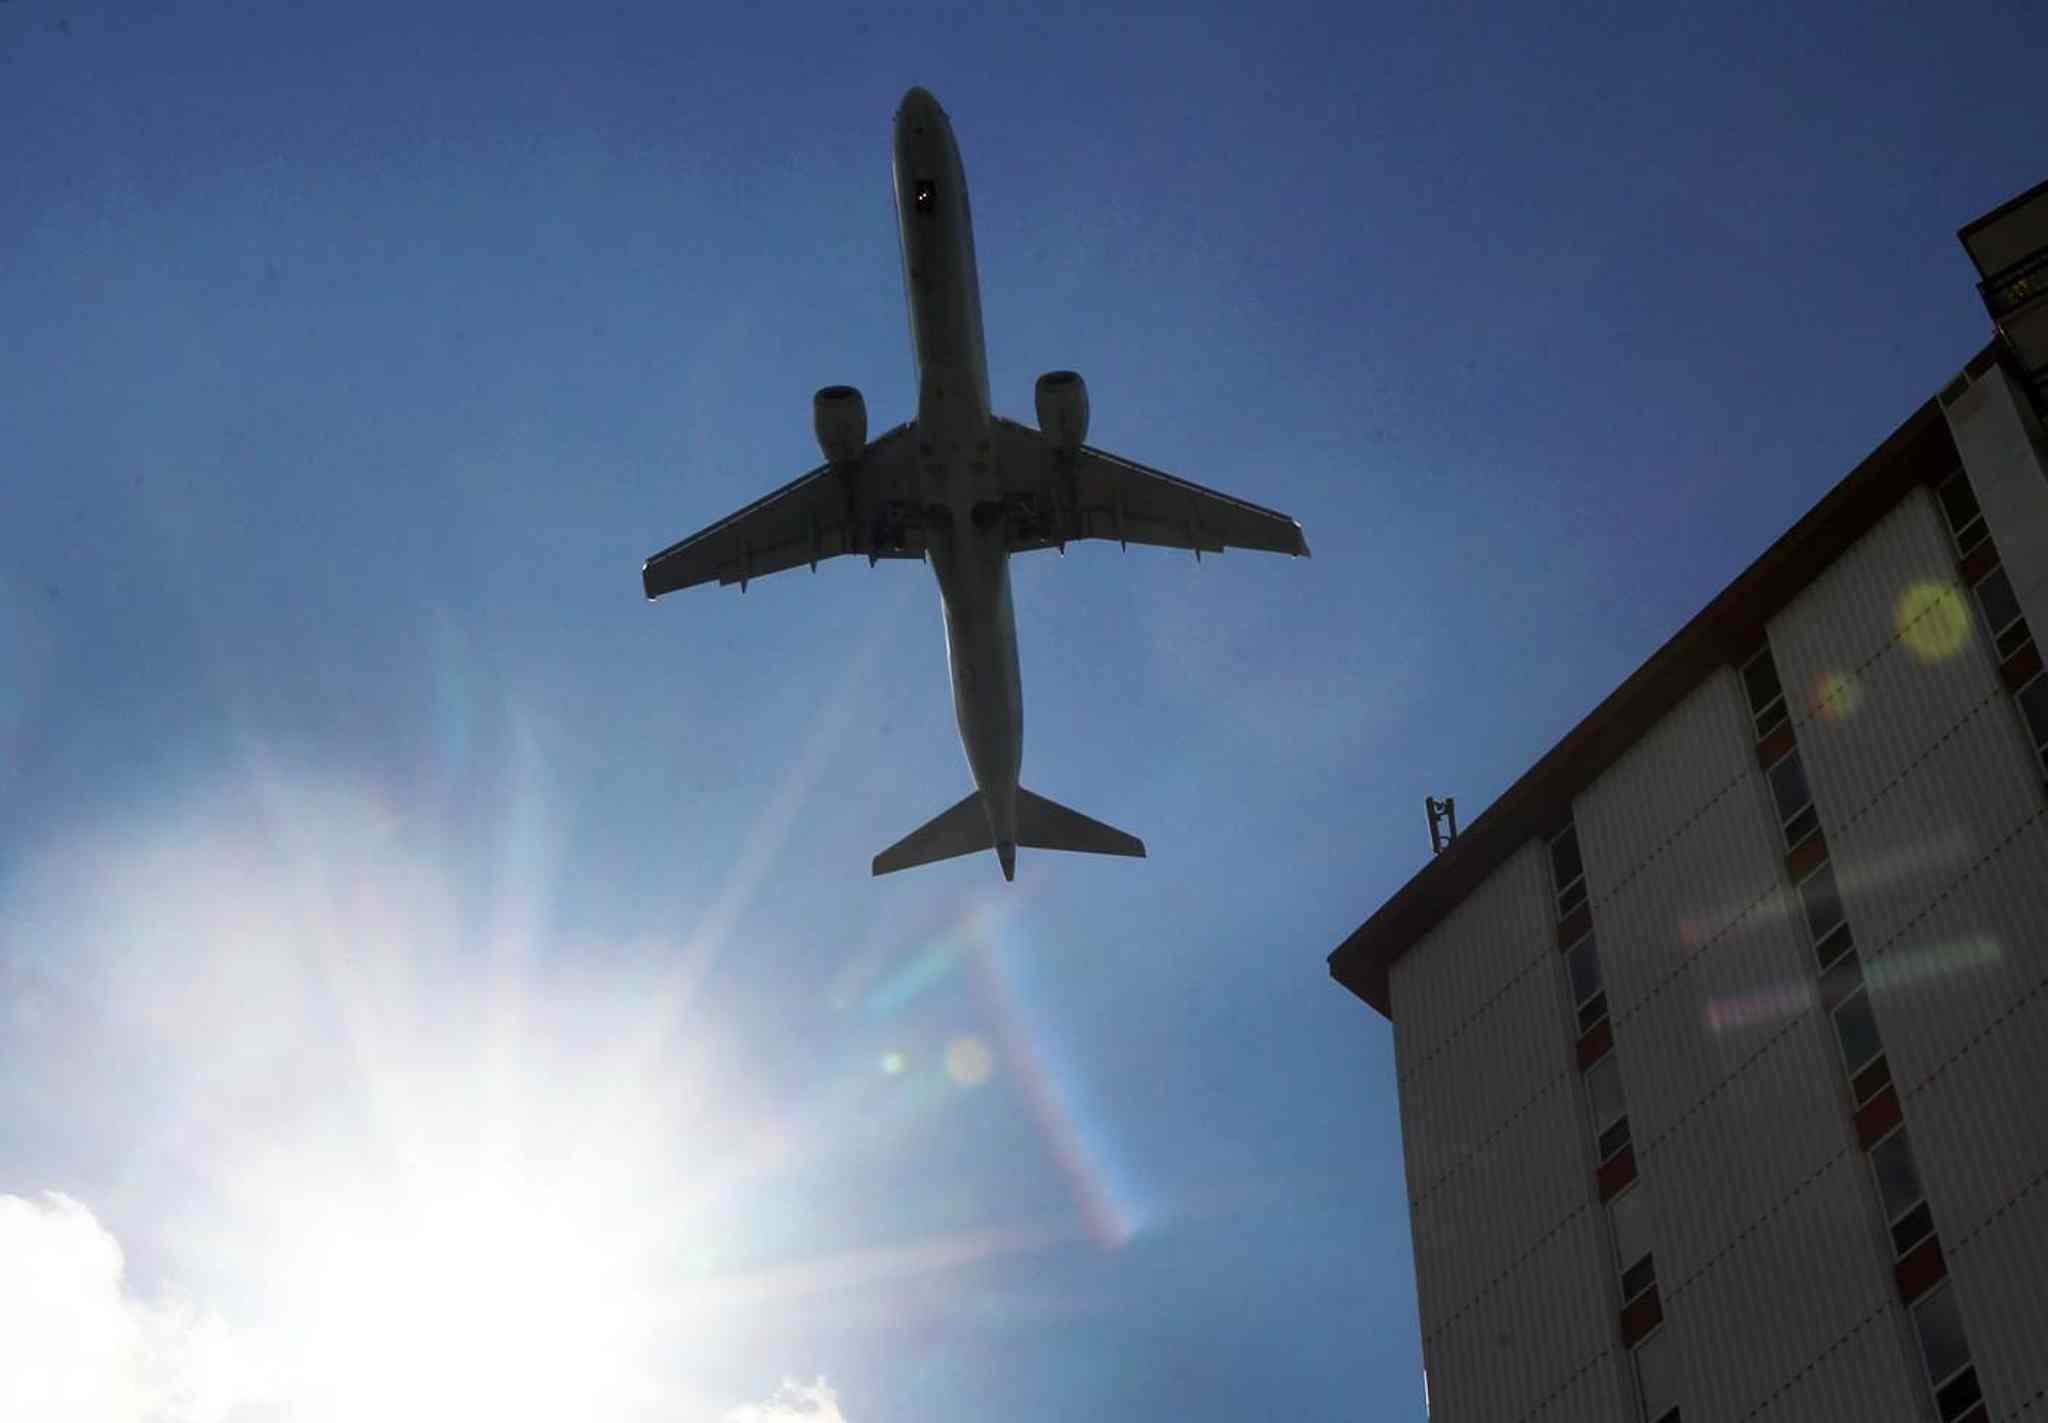 A plane takes off from Richardson International Airport in Winnipeg on Monday from a northwest-southeast runway while the regular north-south runway is rehabilitated.  The change has resulted in an increase in air traffic in some southwest Winnipeg neighbourhoods.